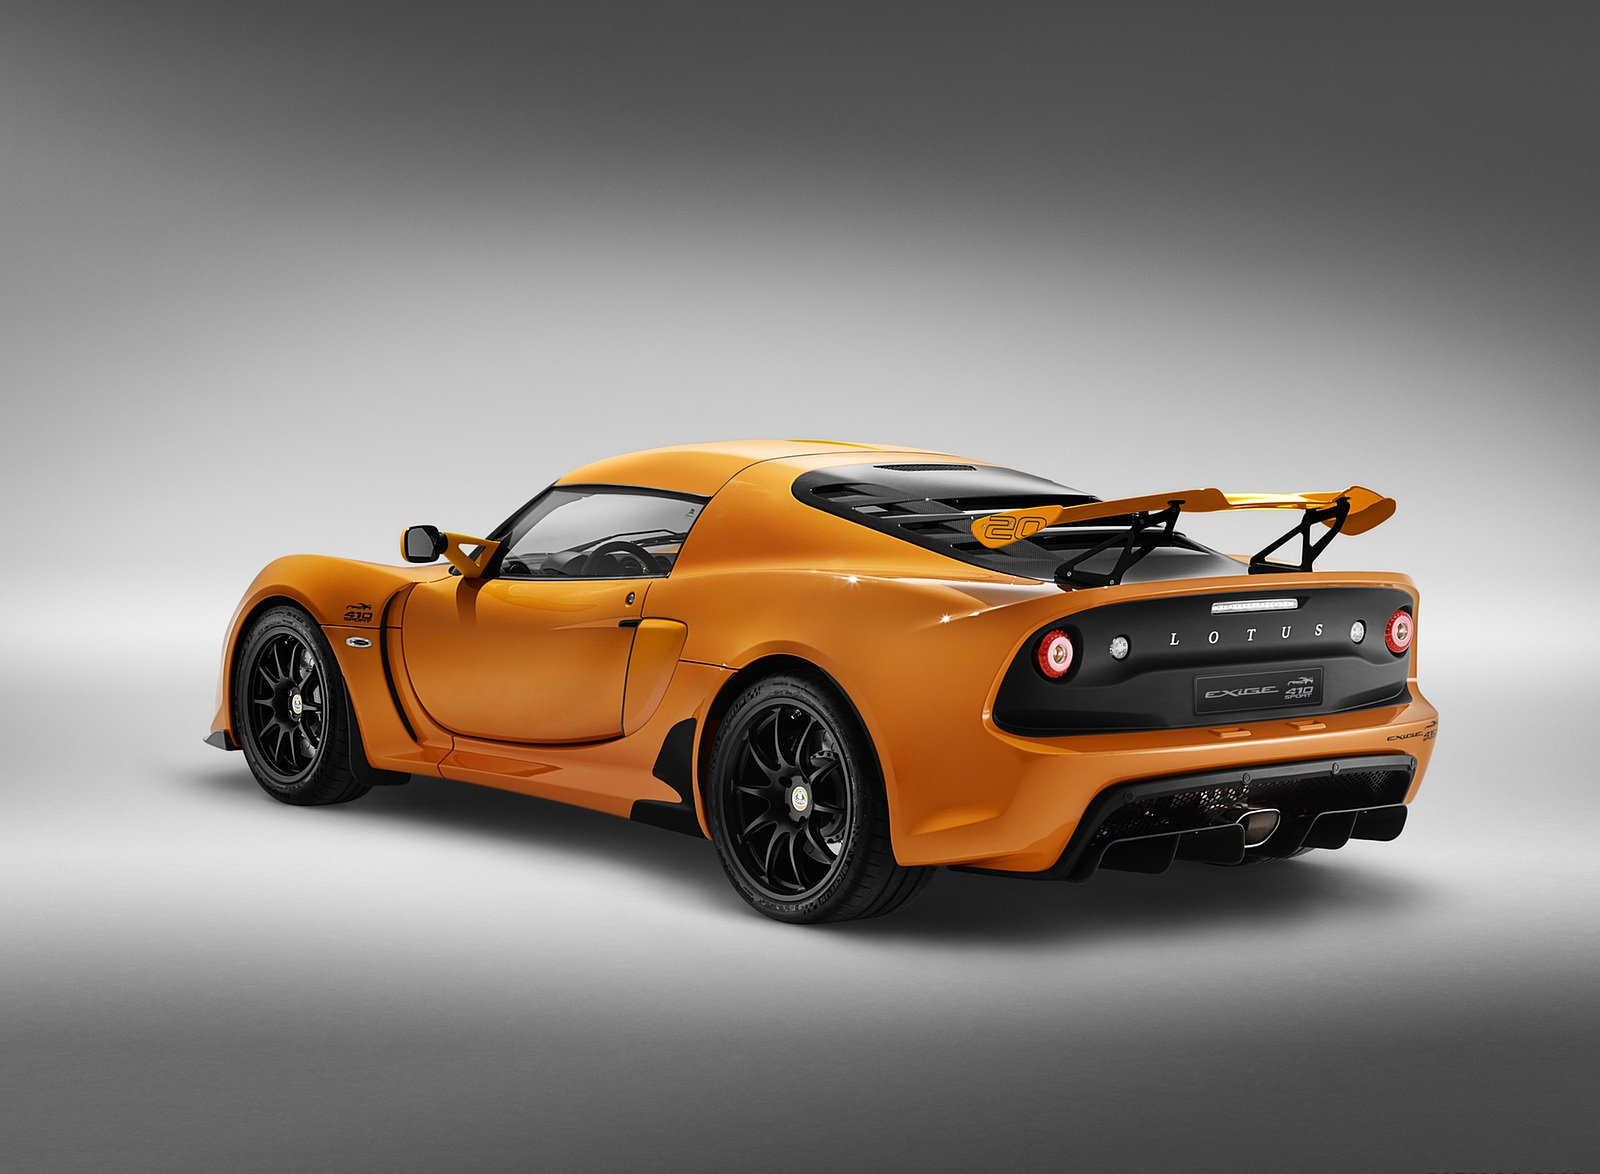 2020 Lotus Exige Sport 410 20th Anniversary (Color: Chrome Orange) Rear Three-Quarter Wallpapers (9)